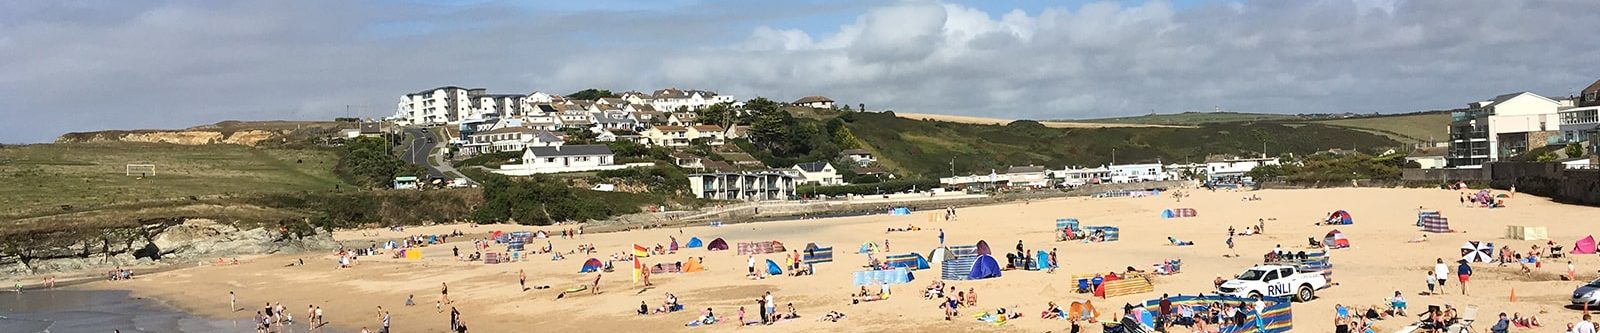 busy Porth beach in summer